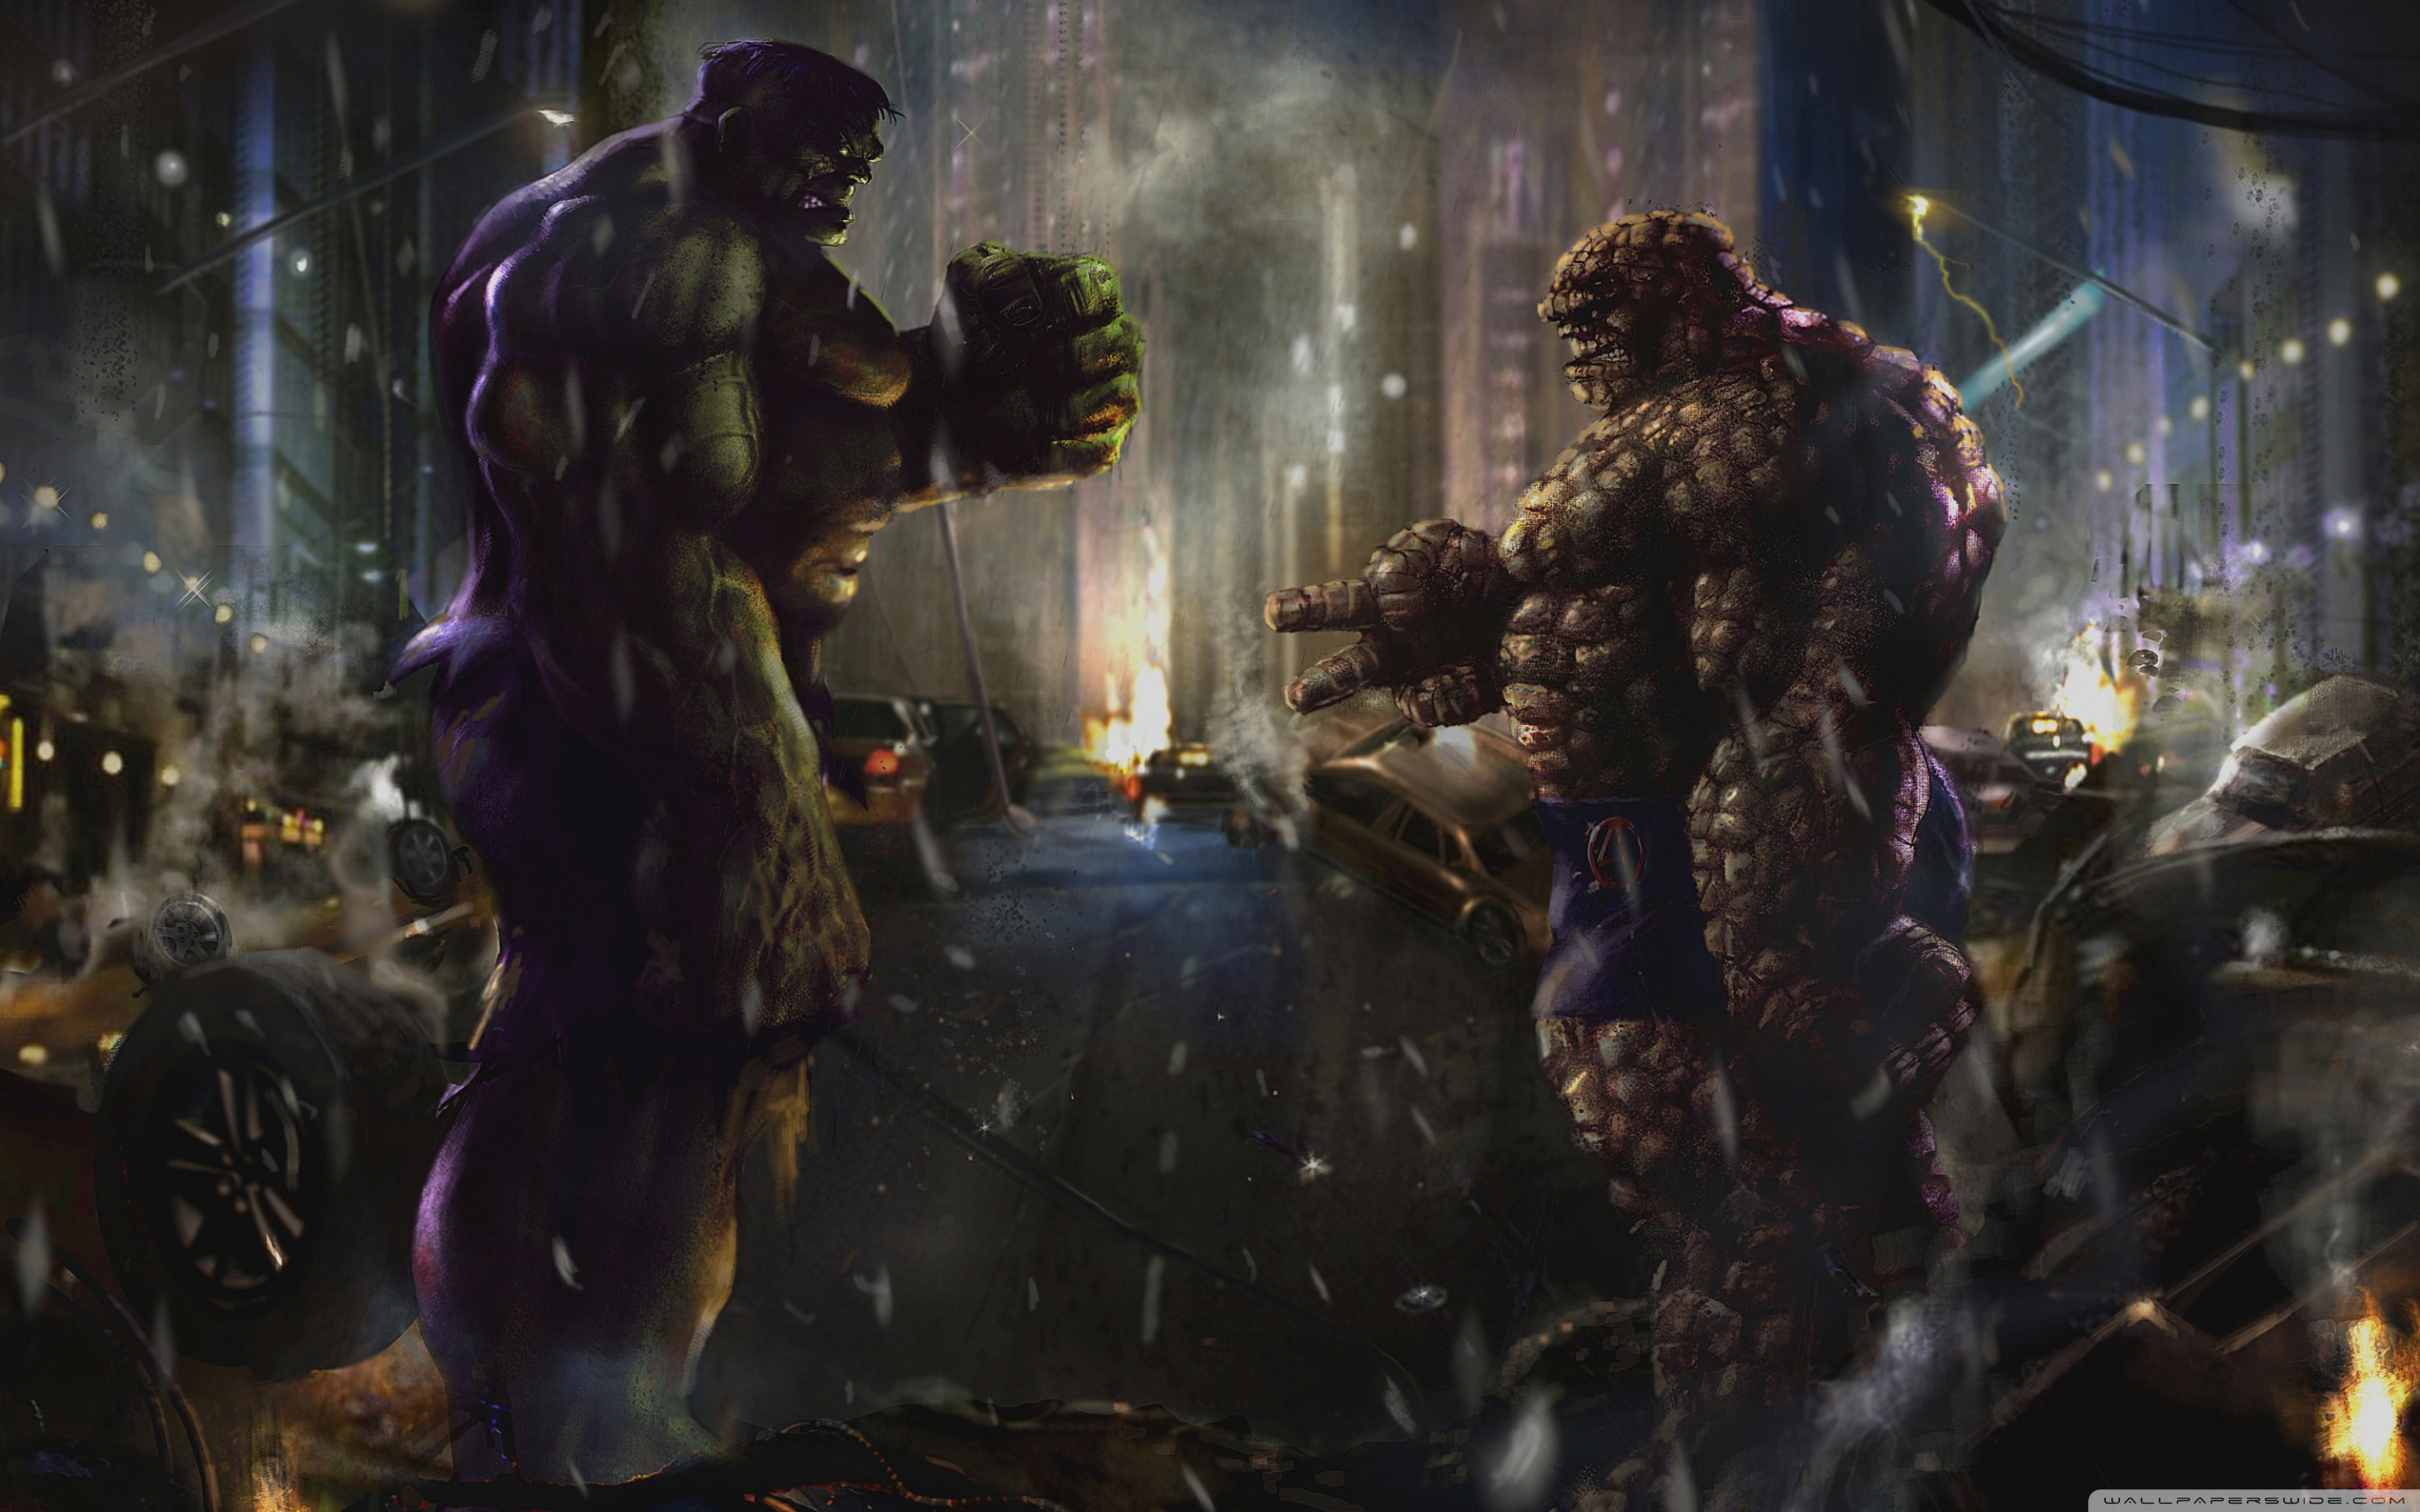 Hulk vs Thing 4K HD Desktop Wallpaper for 4K Ultra HD TV 2880x1800